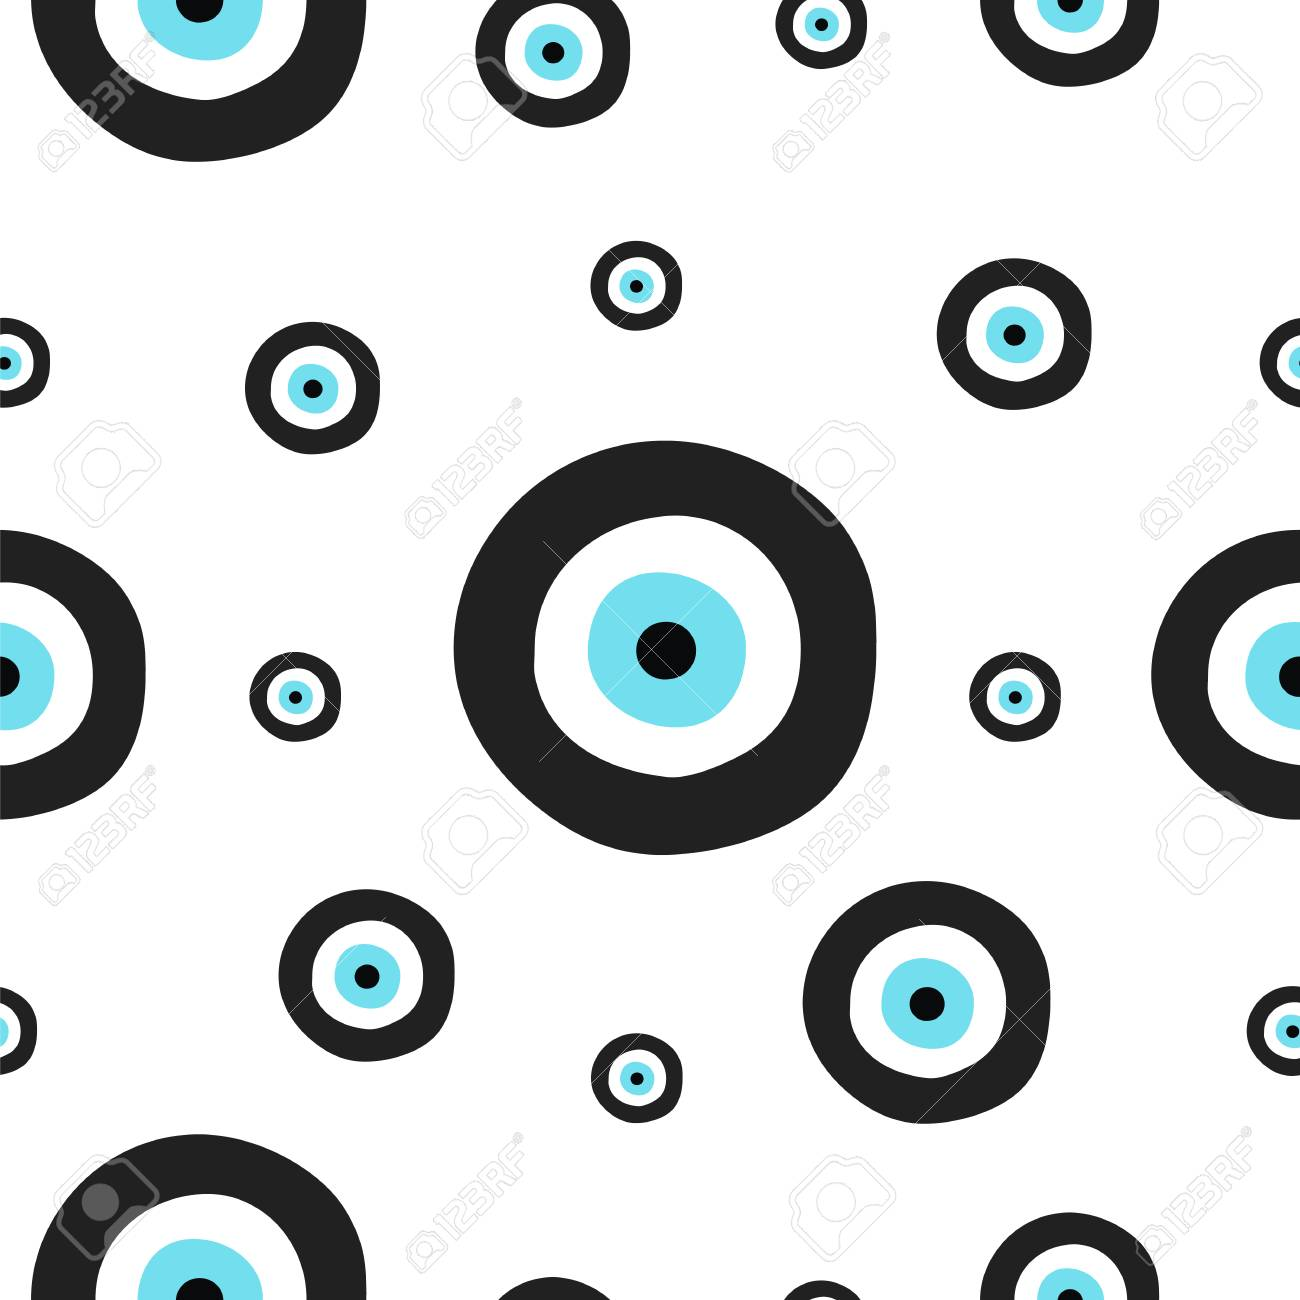 seamless tileable texture with greek evil eye in black and turquoise colors  - symbol of protection 2a1d2a278